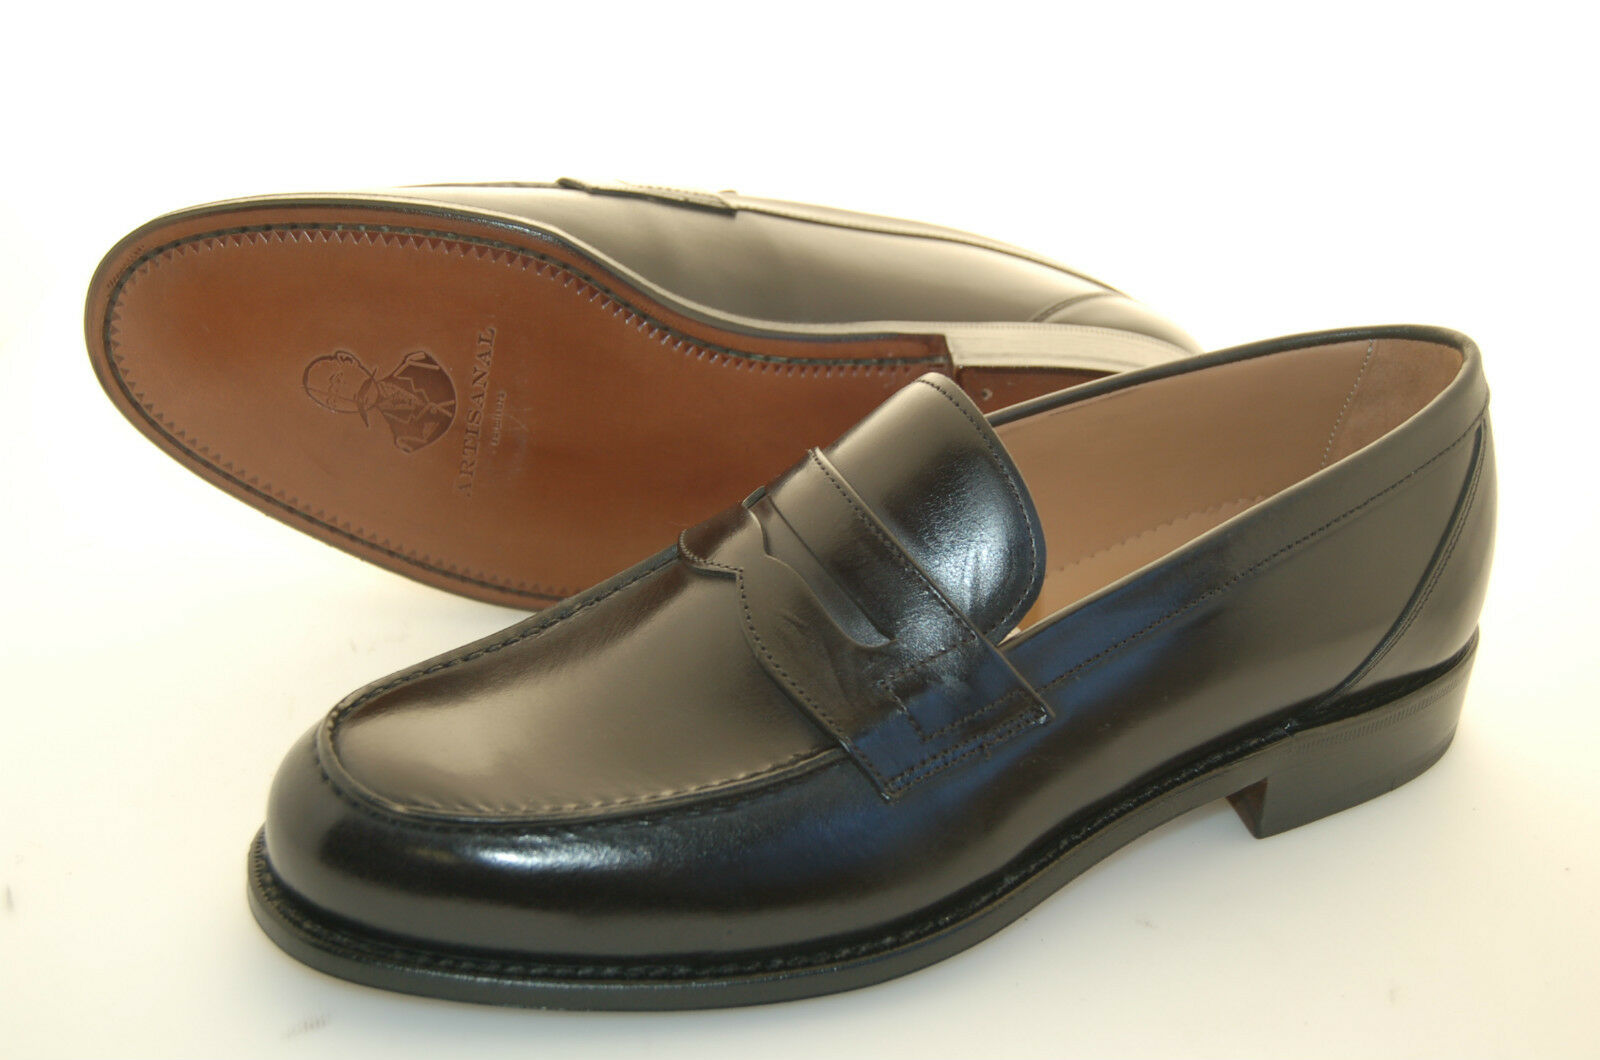 MAN - 42 - 8eu - PENNY LOAFER - BLACK OLD MOUNTAIN CALF - LEATHER SOLE